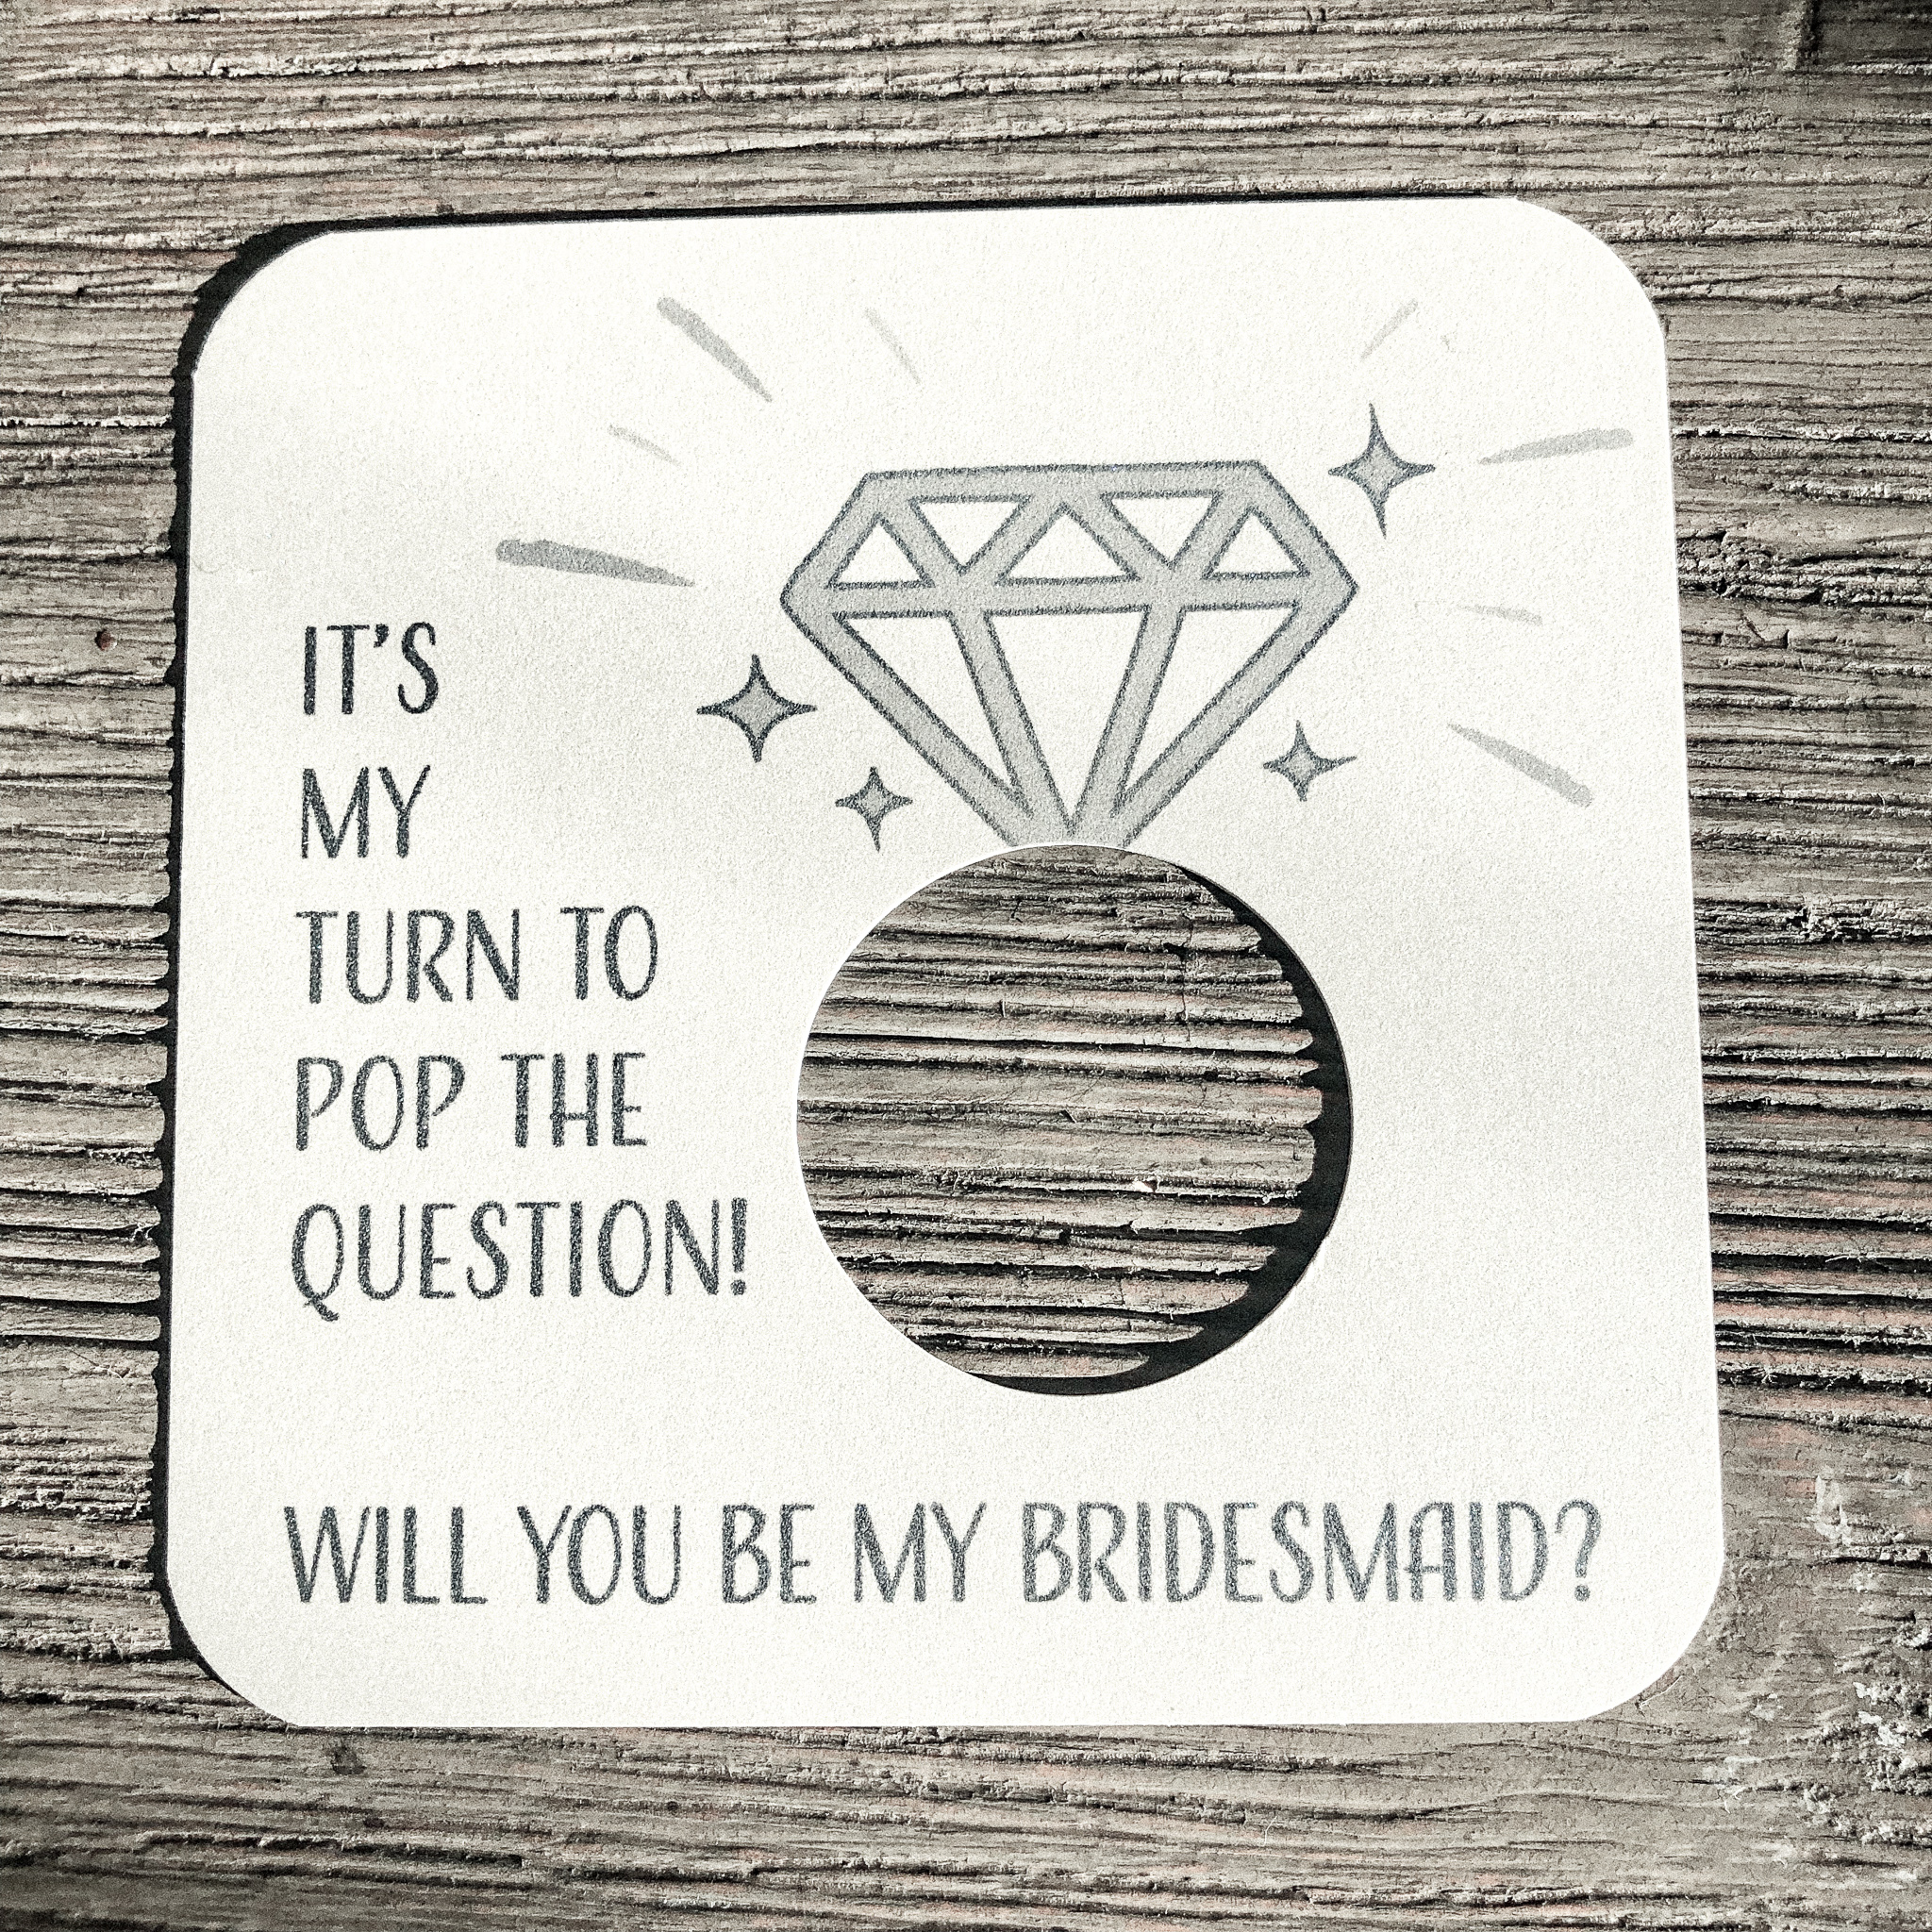 It's my turn to pop the question! Will you be my bridesmaid? Shimmer champagne Card stock